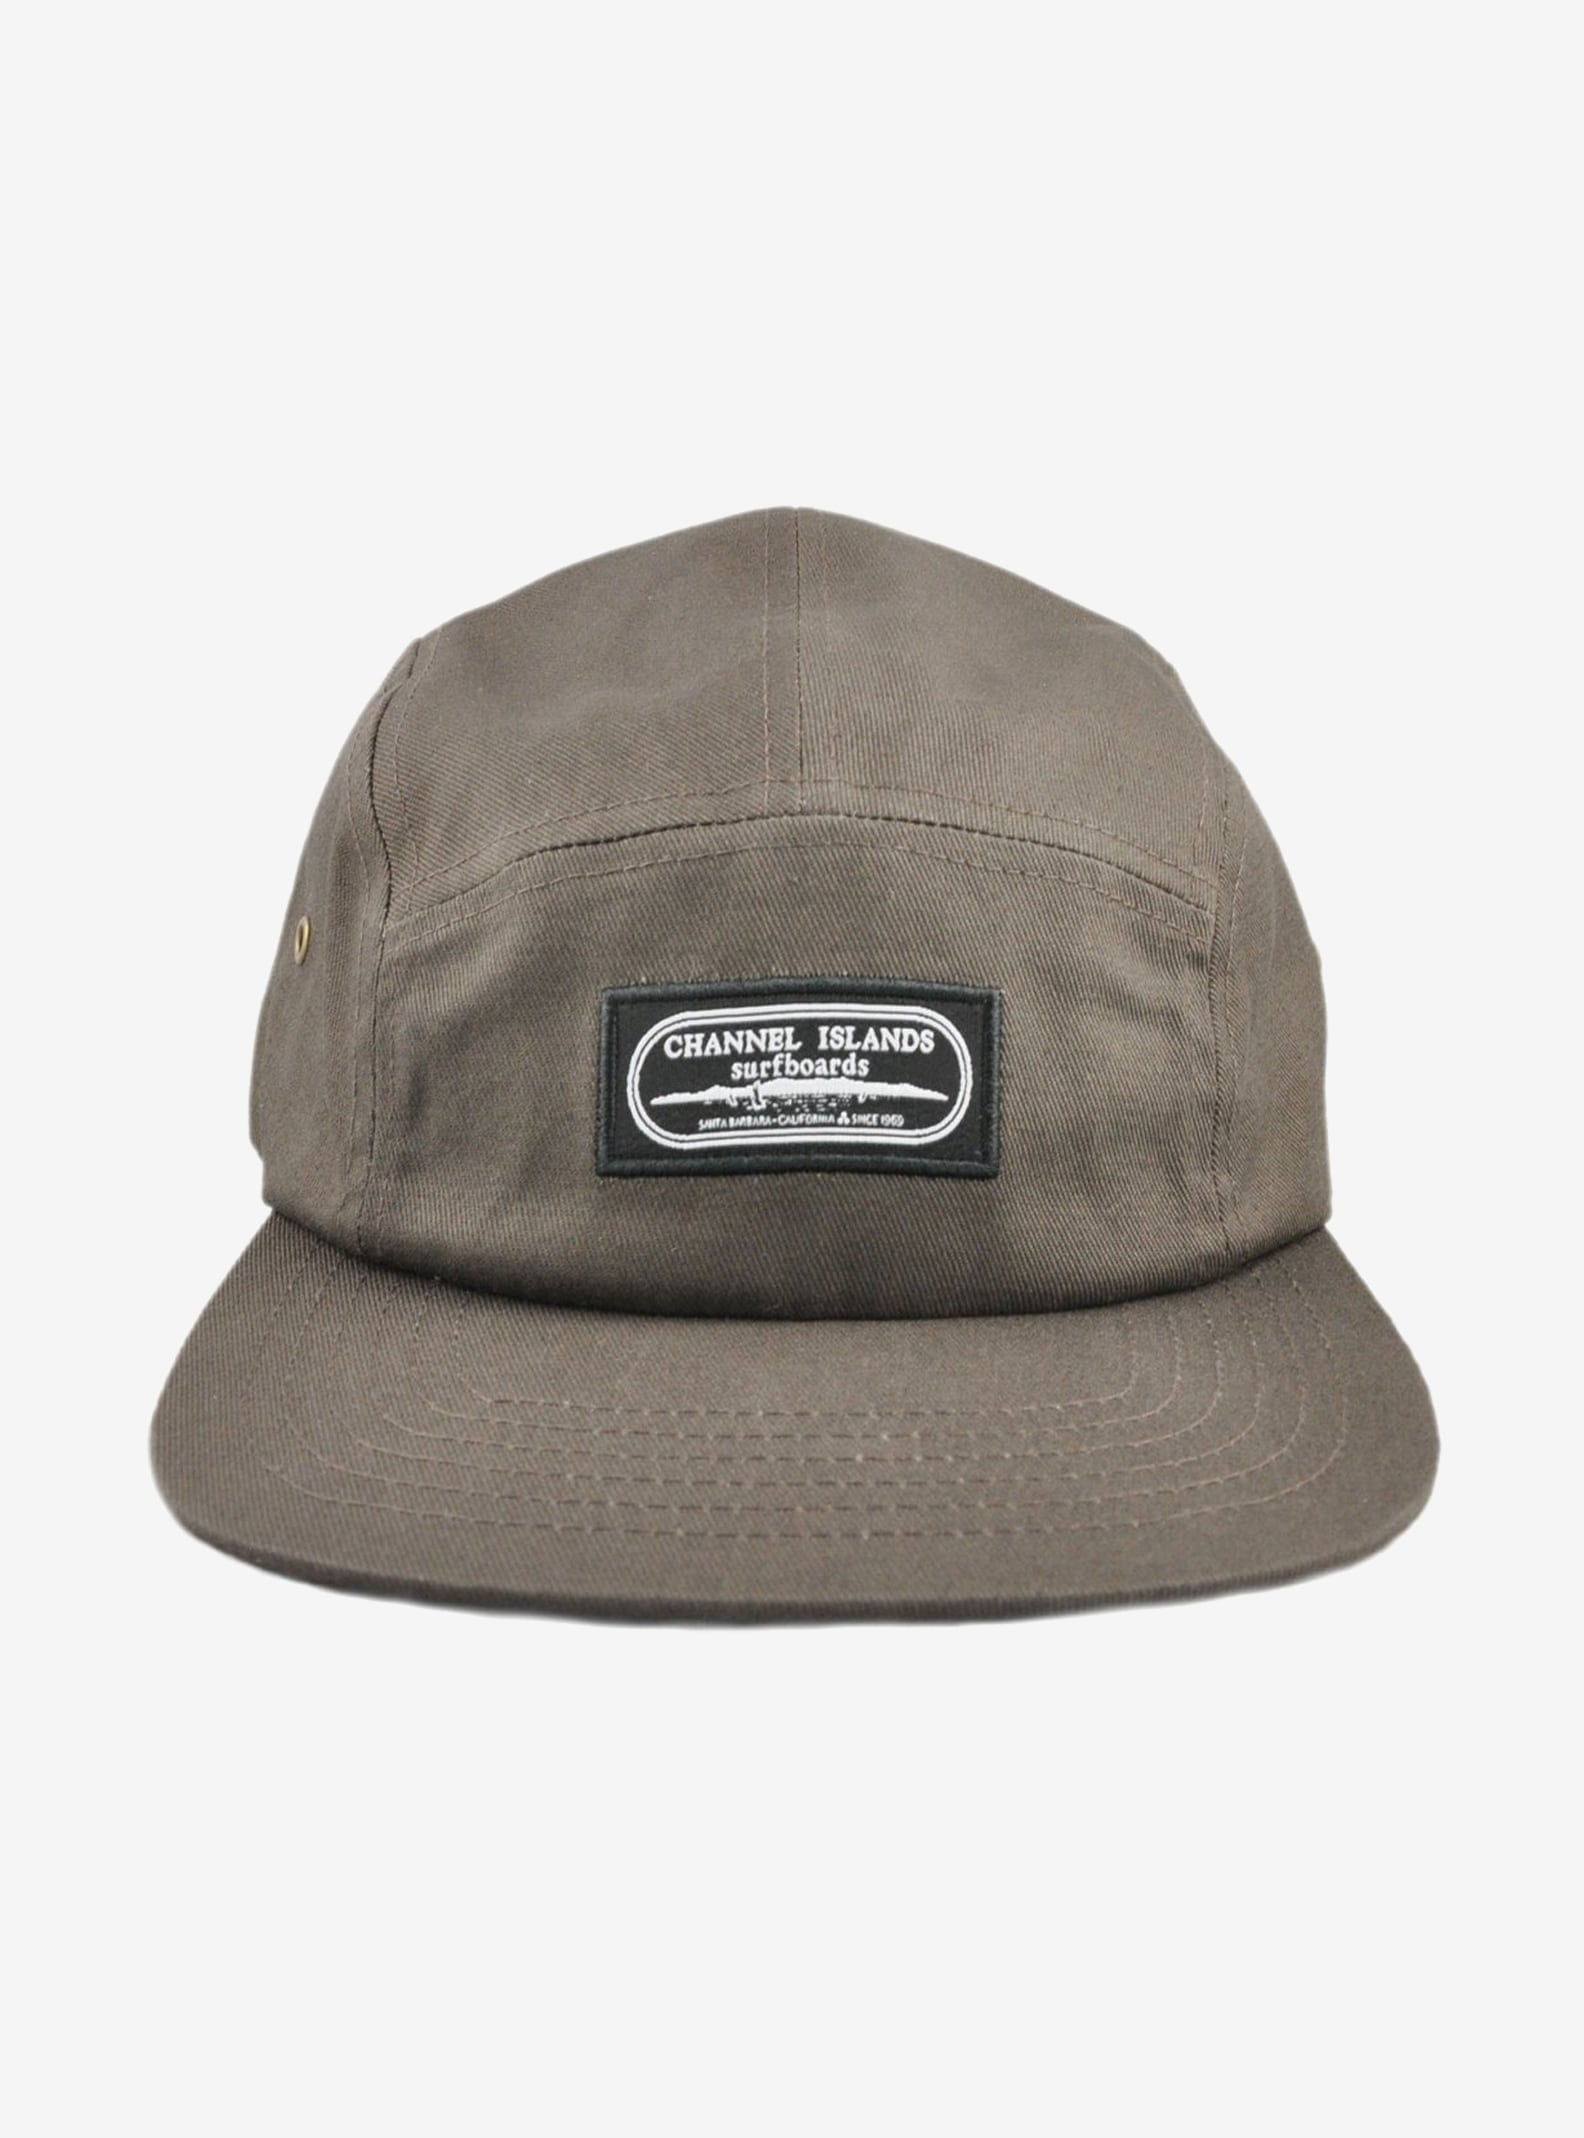 Channel Islands Oval Islands 6 Panel Hat shown in Taupe